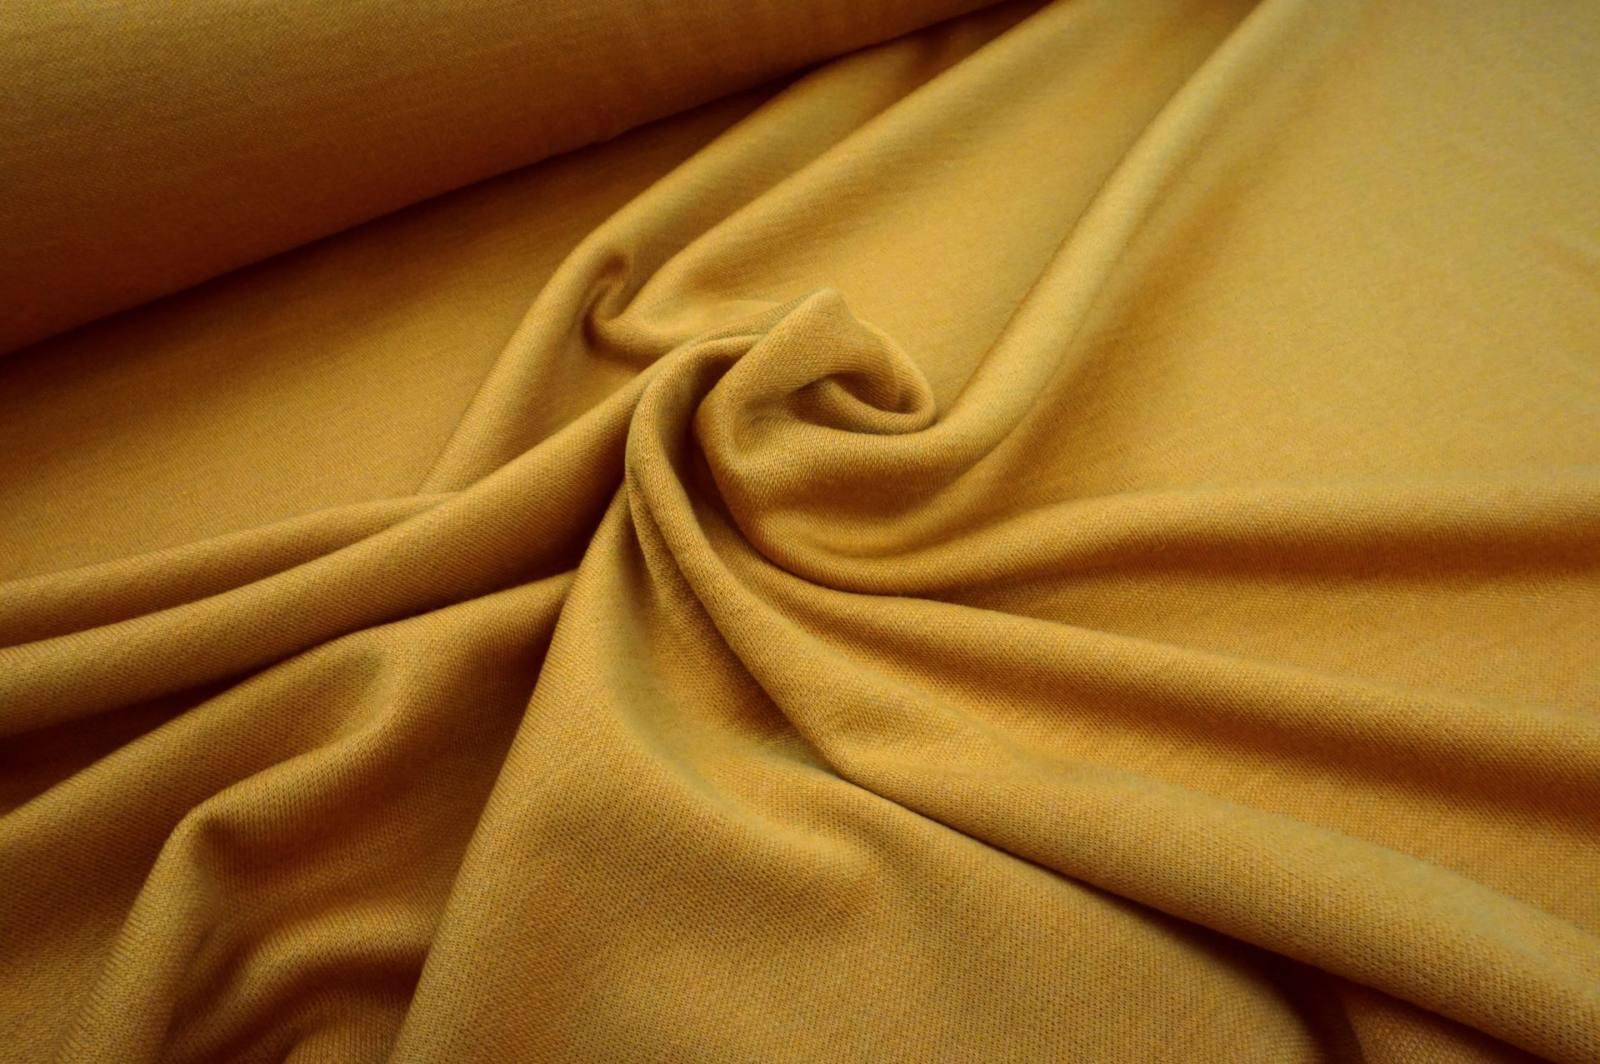 Woll Interlockjersey golden ochre